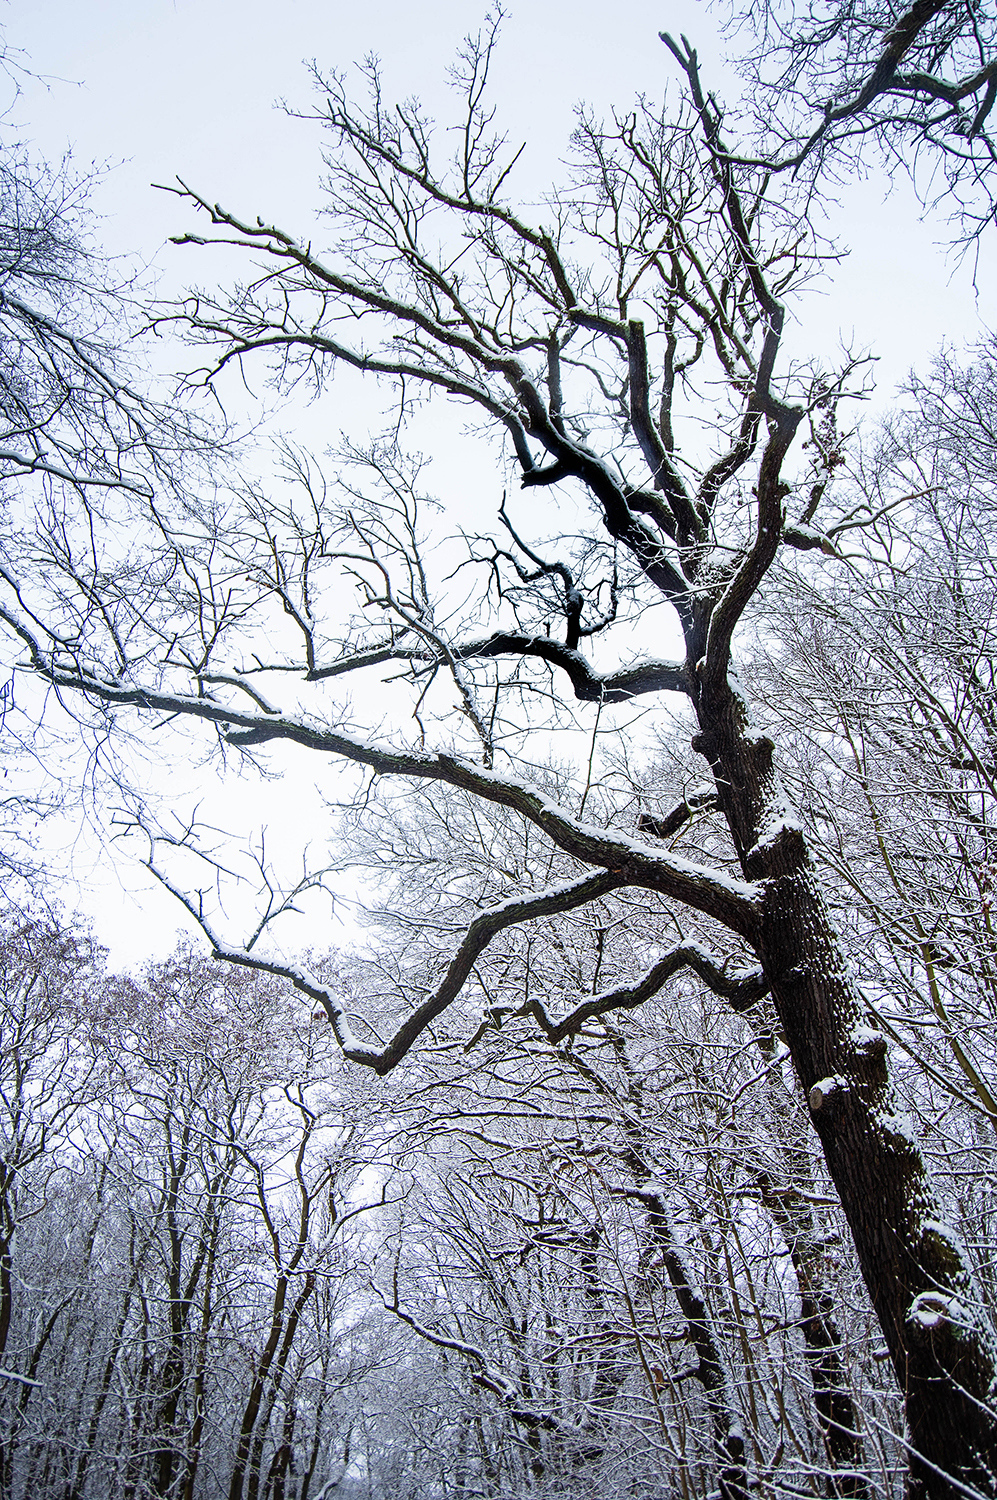 <p>A tall oak and other trees coated just perfectly during a rare Berlin snowfall. <br /></p> <p>As I took this picture, a woman walking her dog passed by and said 'No one will ever believe those pictures are from Berlin'. Fair point.</p>